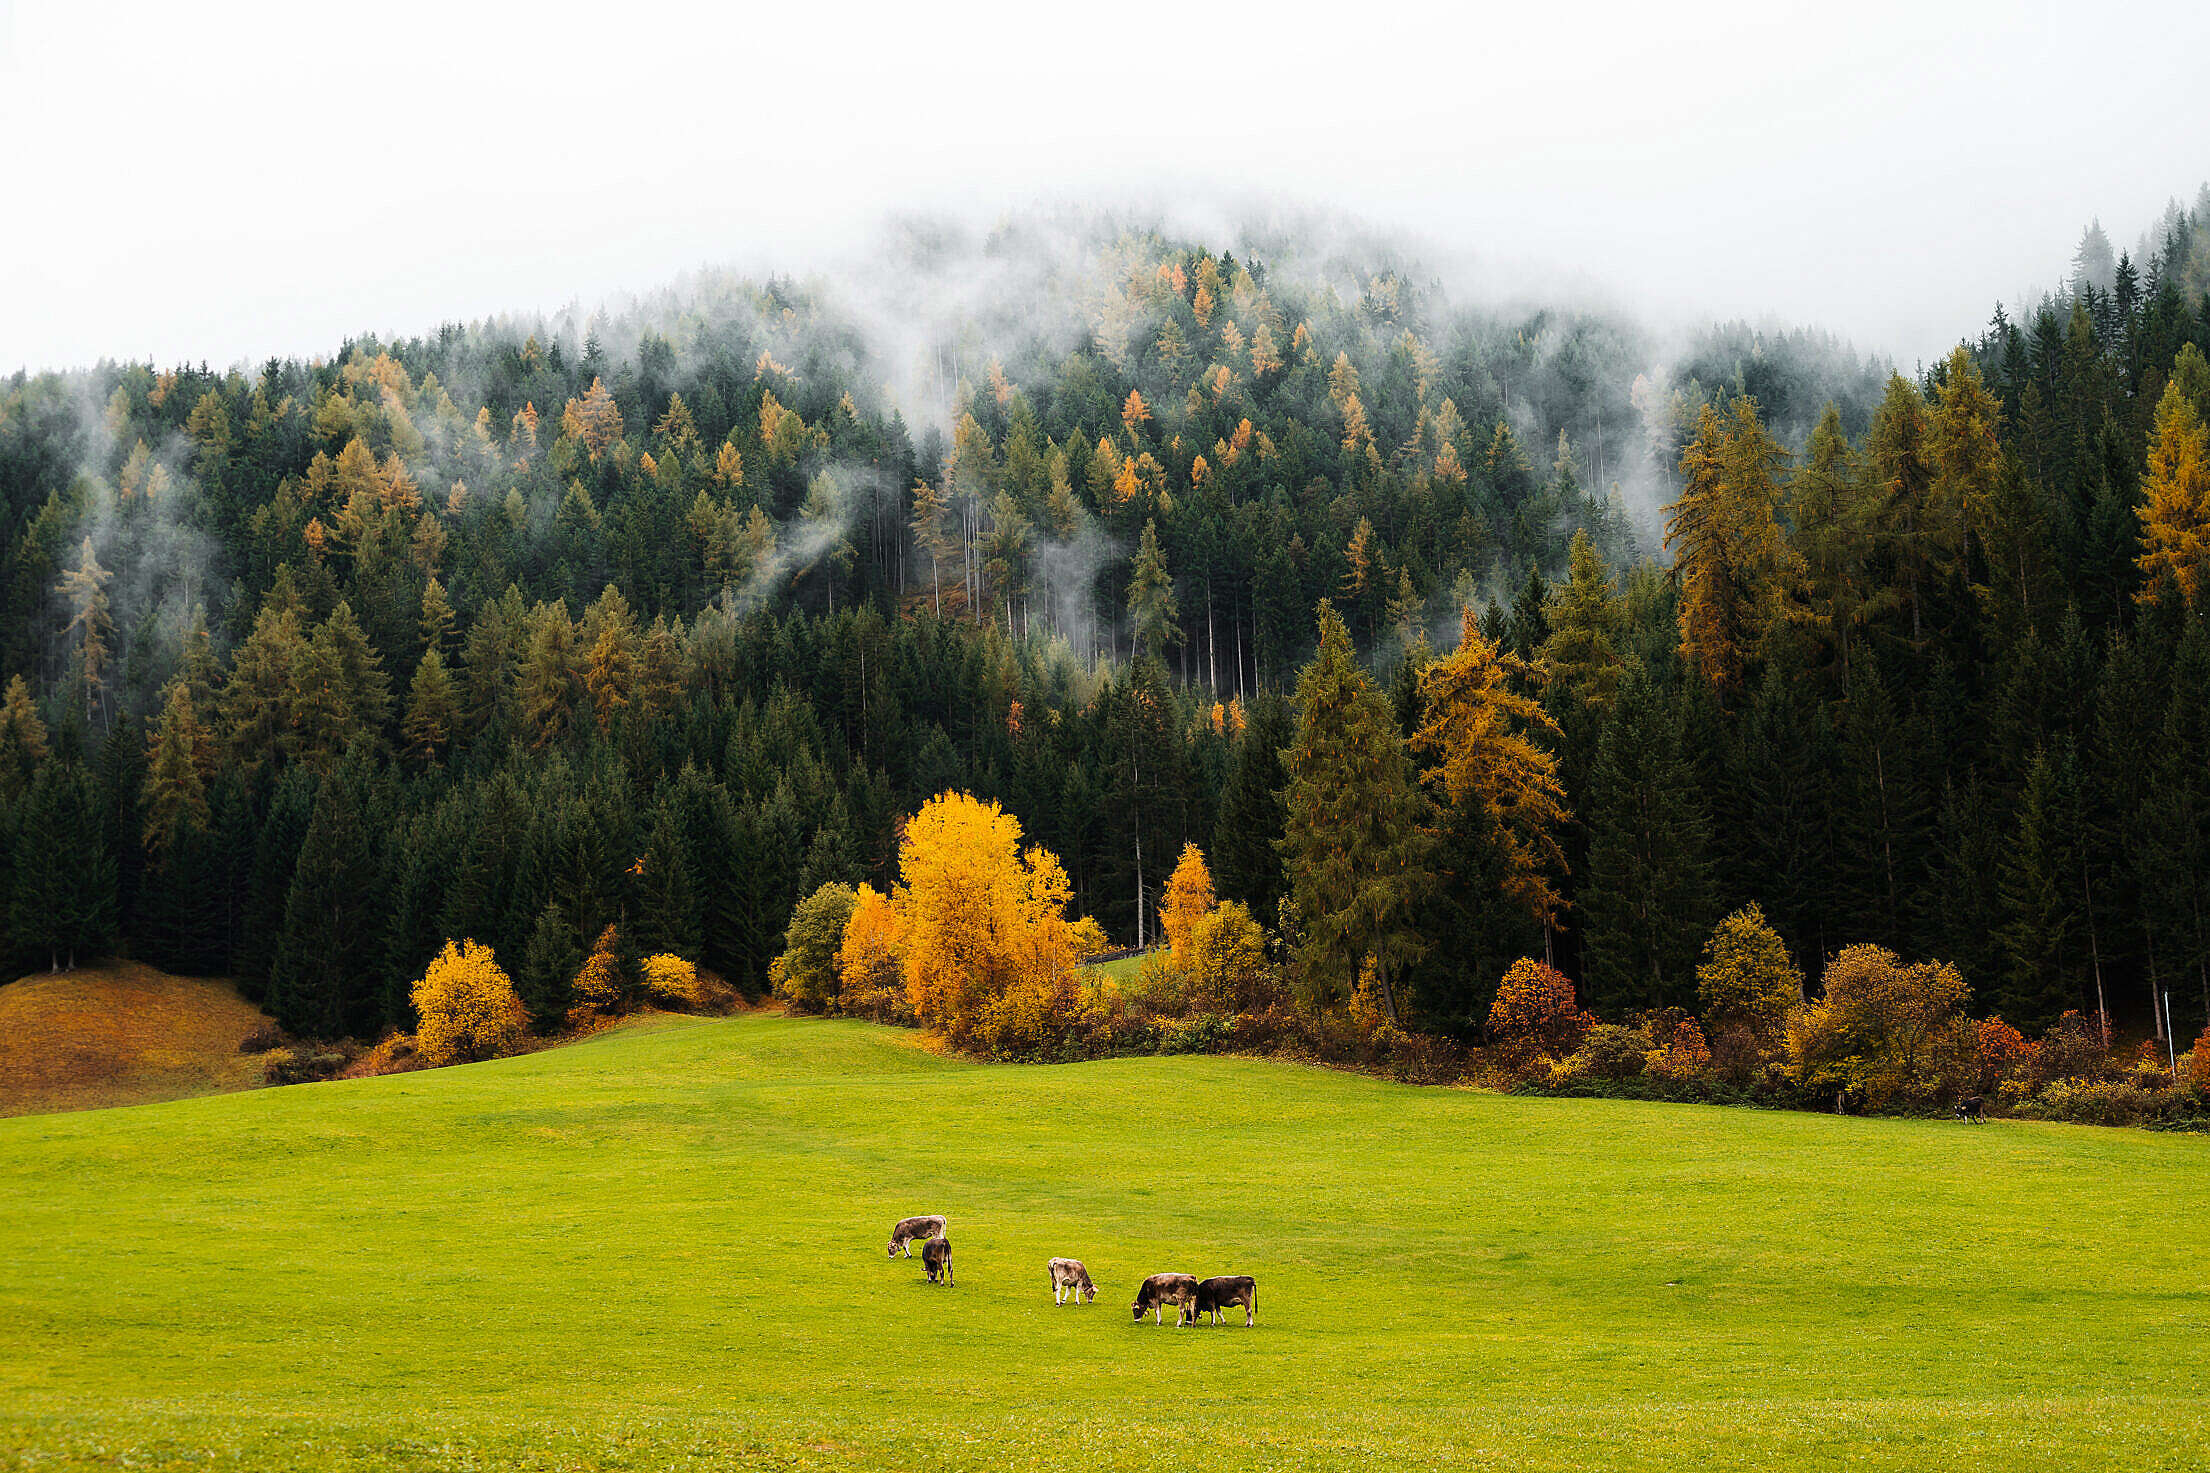 Cows Grazing on Fresh Green Pastures Free Stock Photo